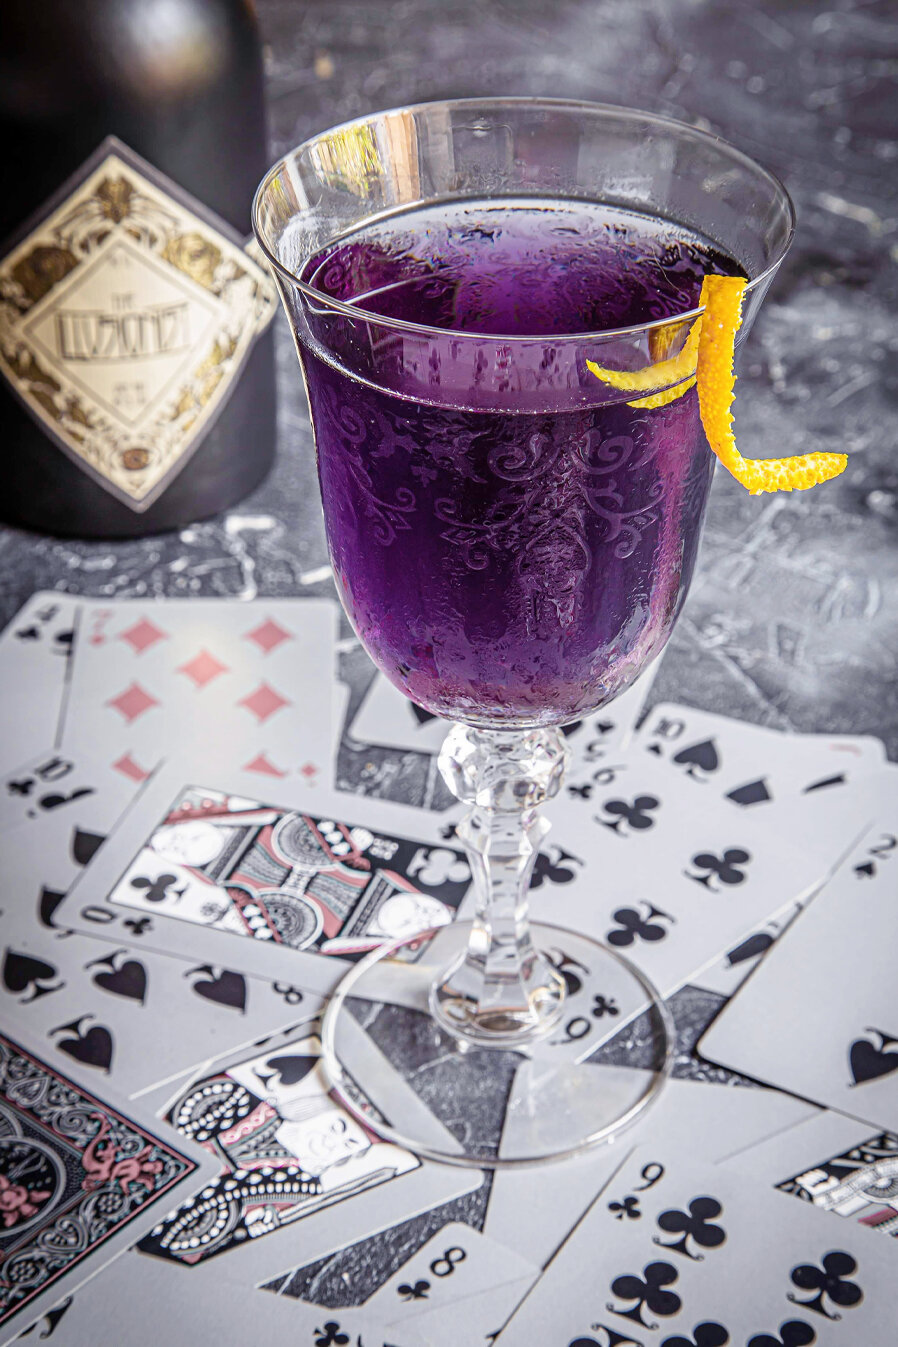 Play your cards - Don't settle for less and master your game with the Illusionist Dry Gin.5cl Illusionist Dry Gin1cl Curaçao1.5cl Raspberry syrupFill with Hibiscus TonicGarnish - Orange Zest